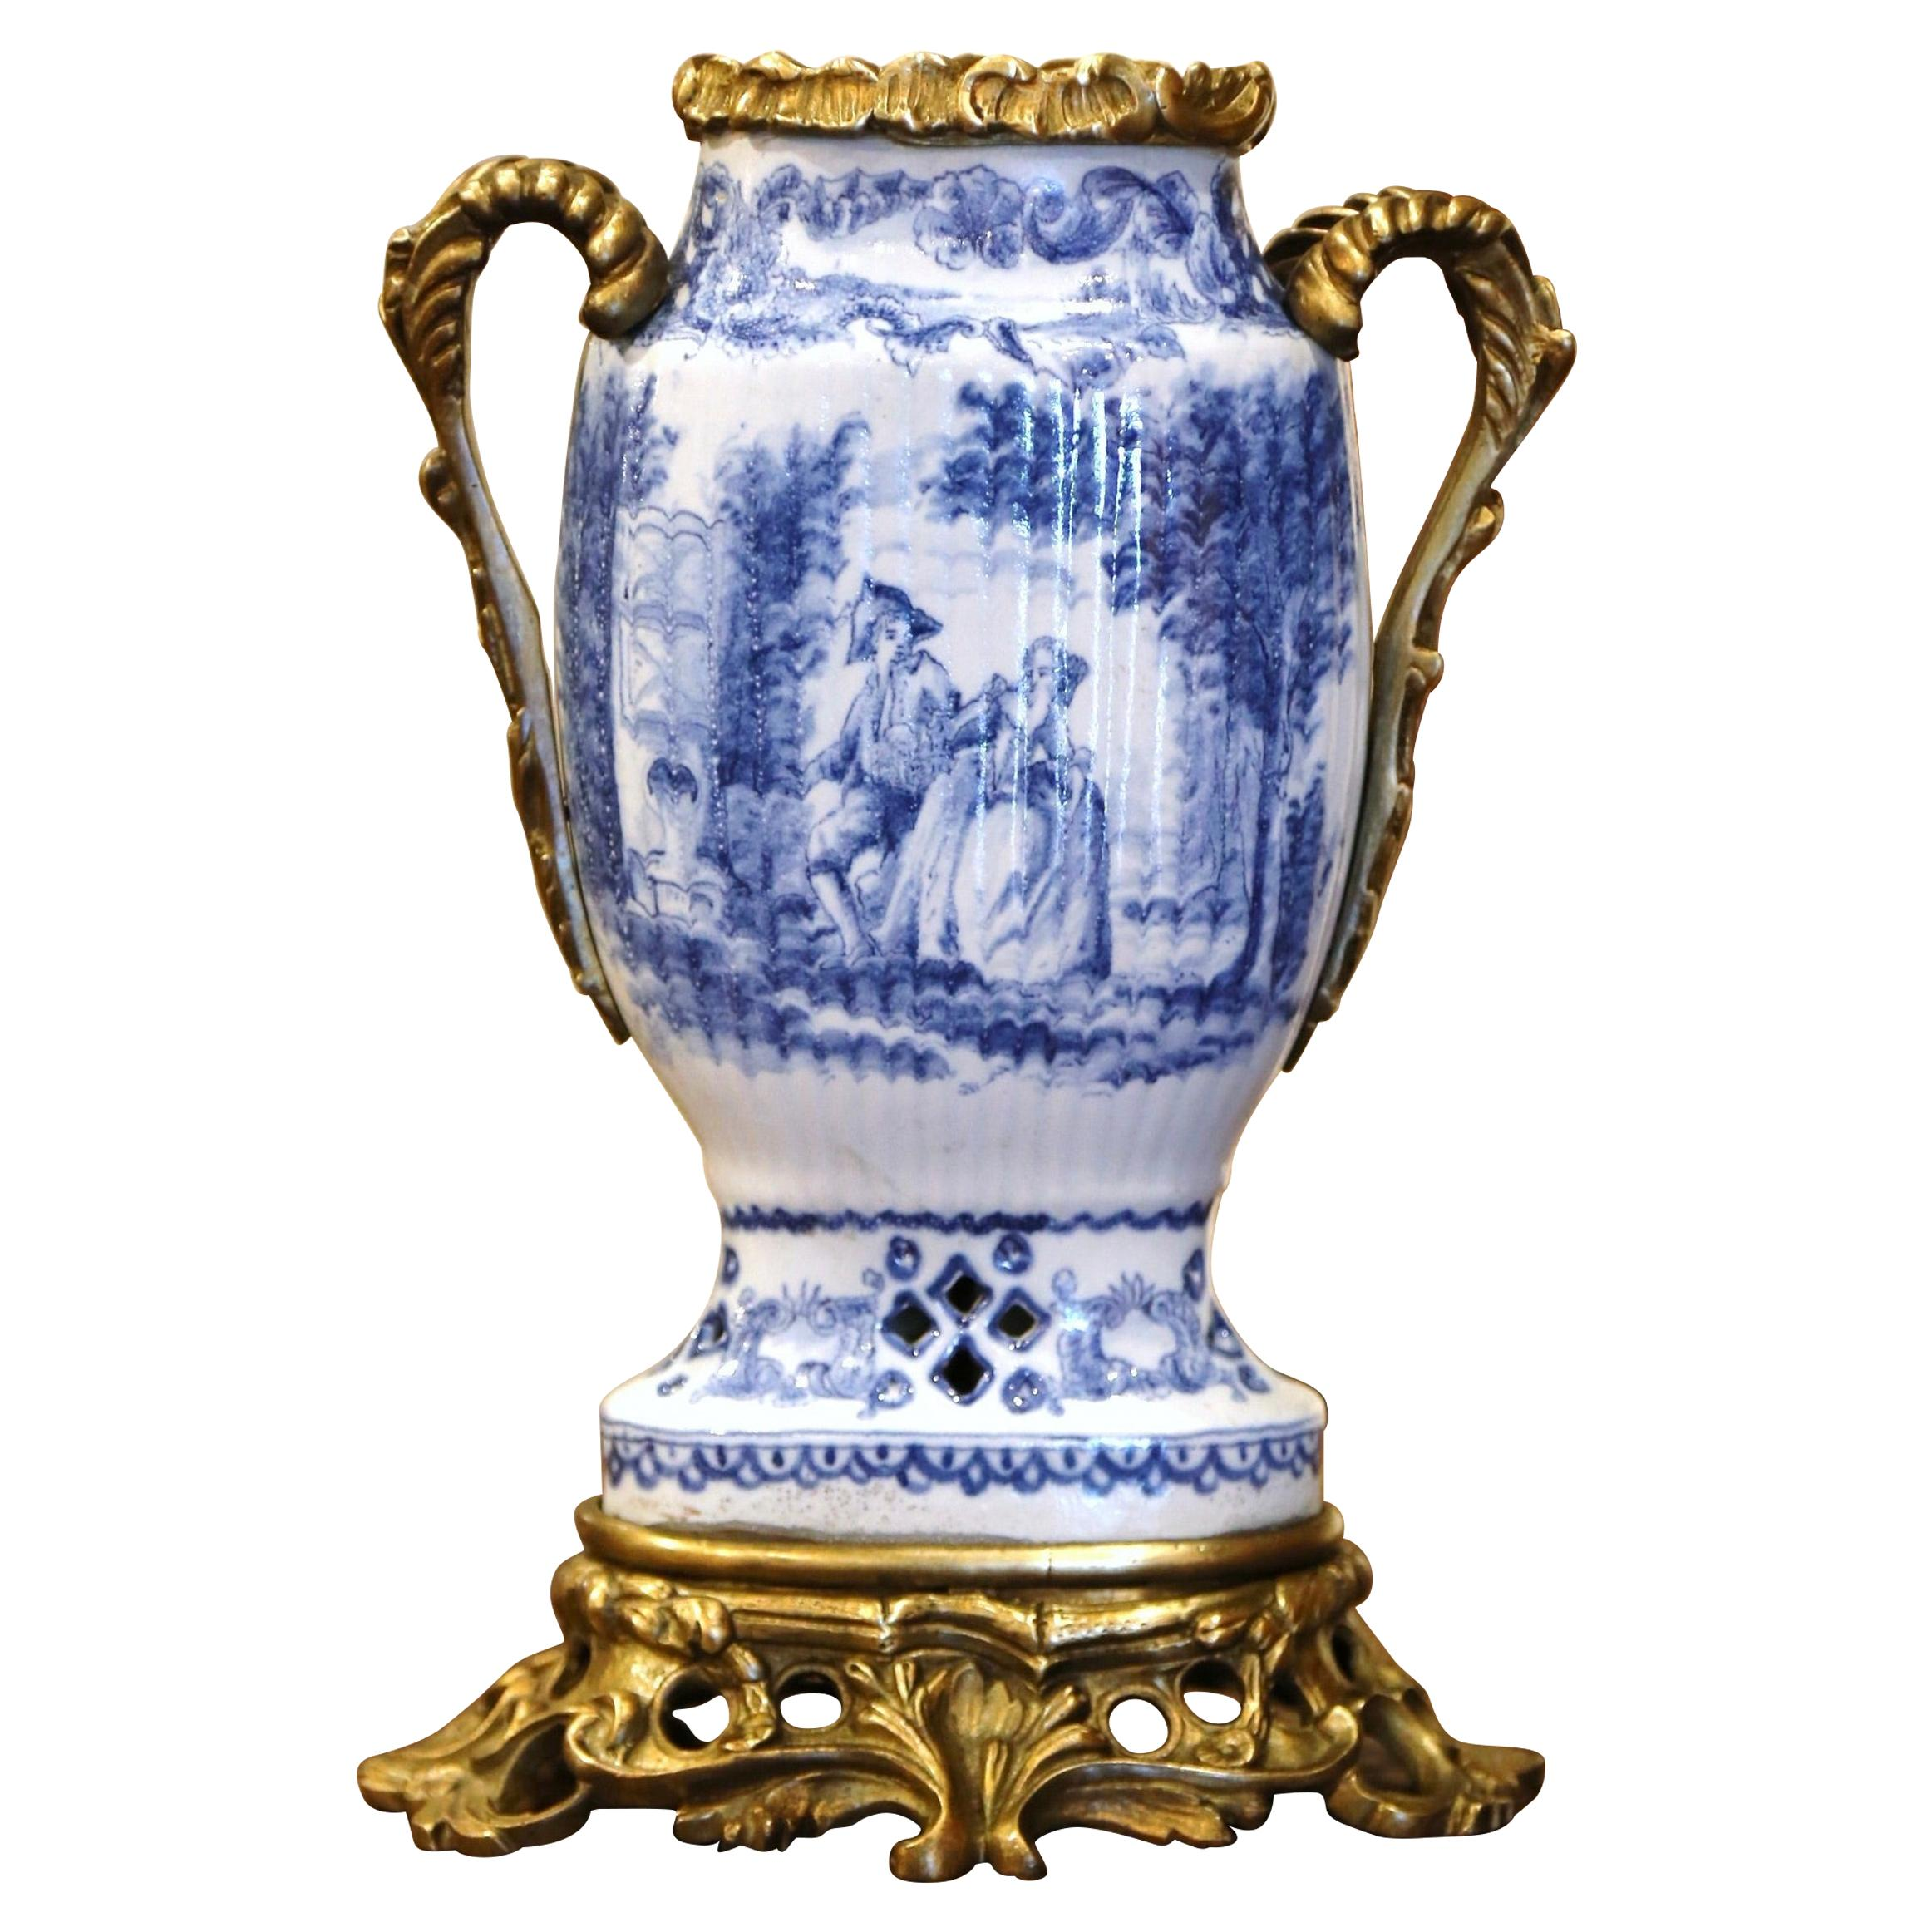 19th Century French Painted Blue and White Faience and Gilt Bronze Delft Vase